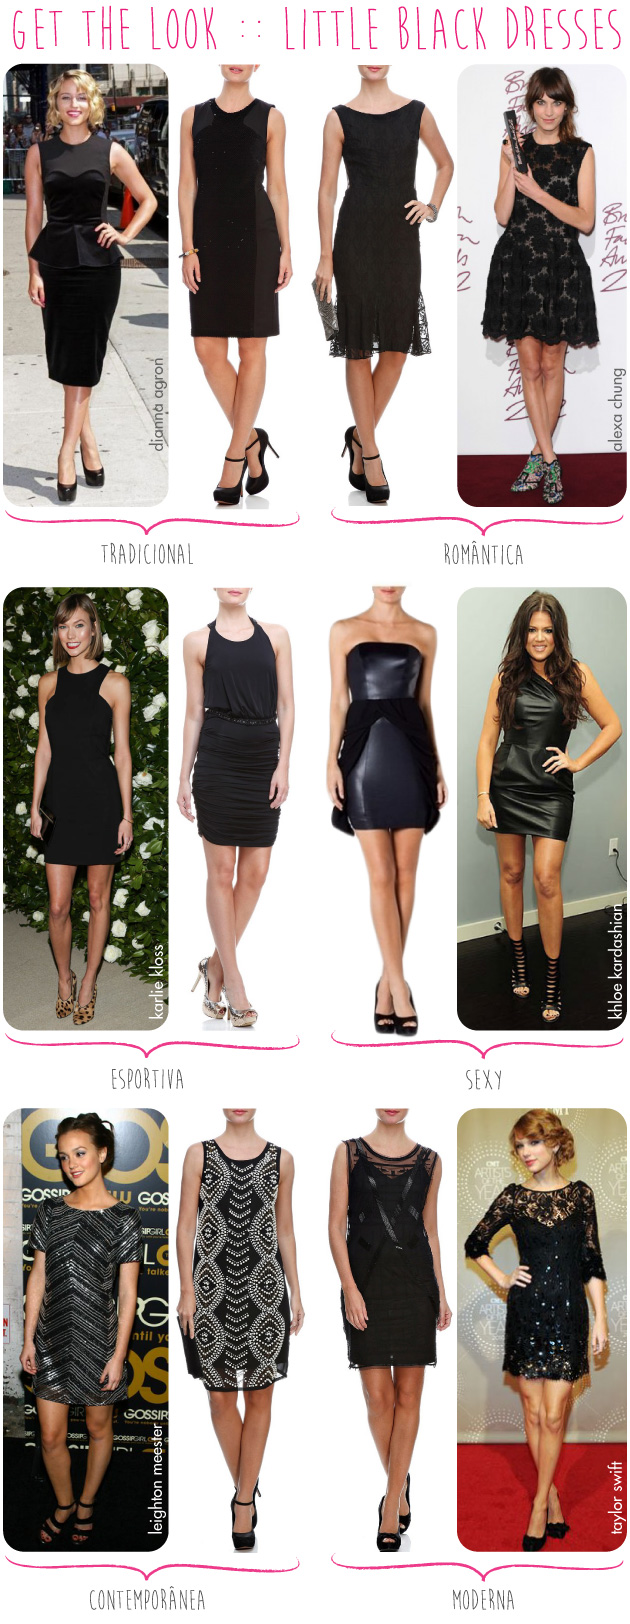 TVZ-mercadolivre-get-the-look-celebridades-little-black-dress